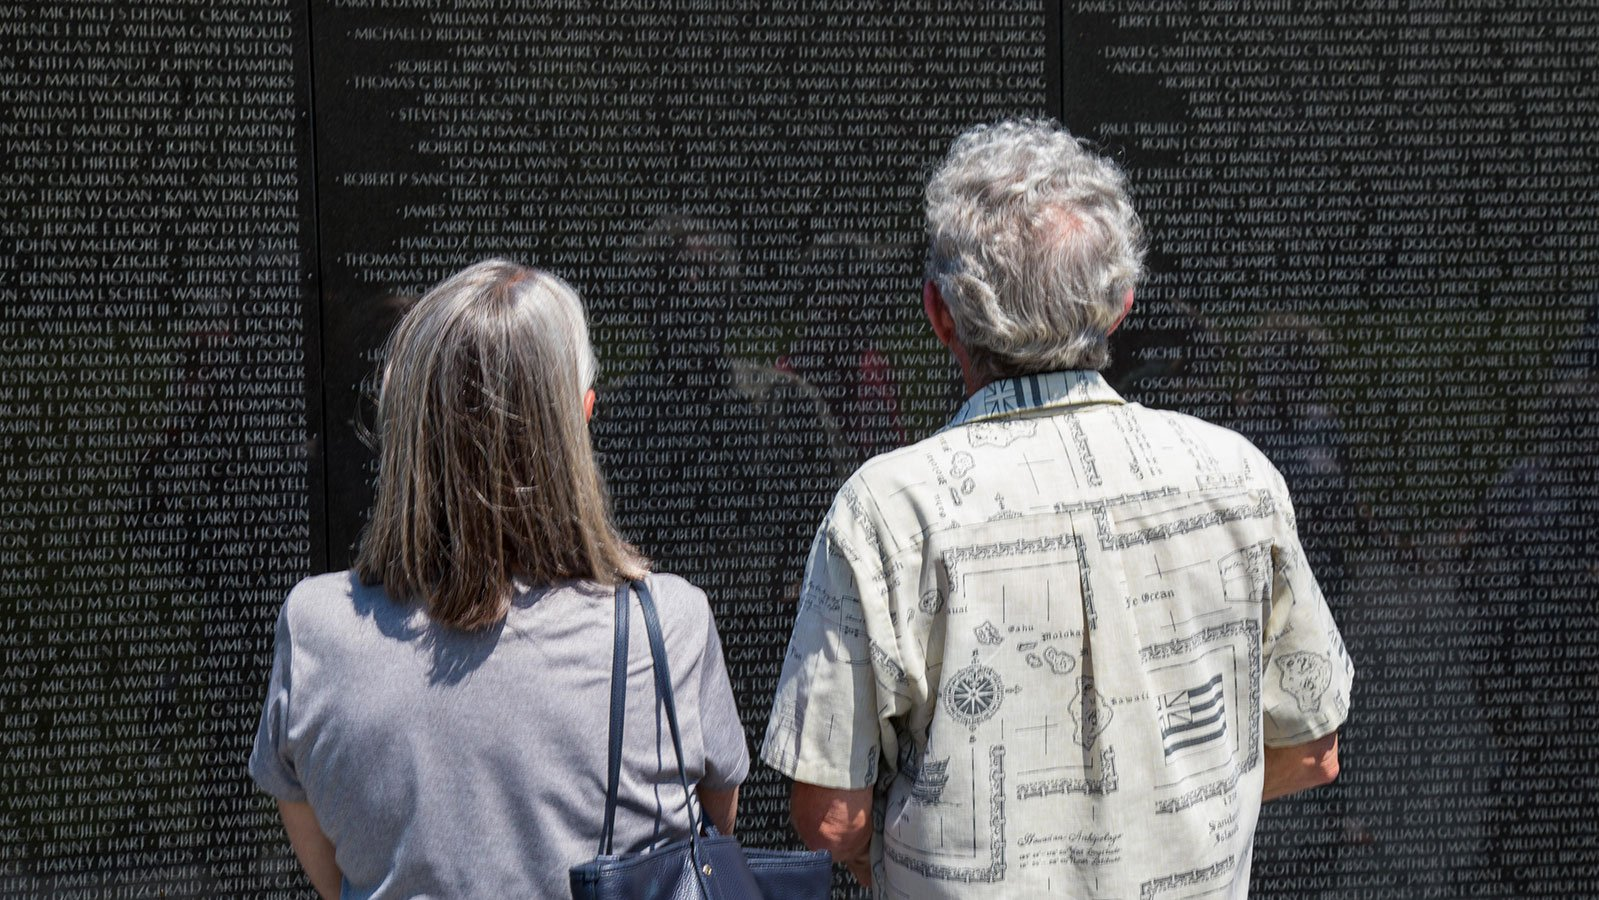 Visitors read the names of the dead or missing at the Vietnam Veterans Memorial in Washington, D.C.